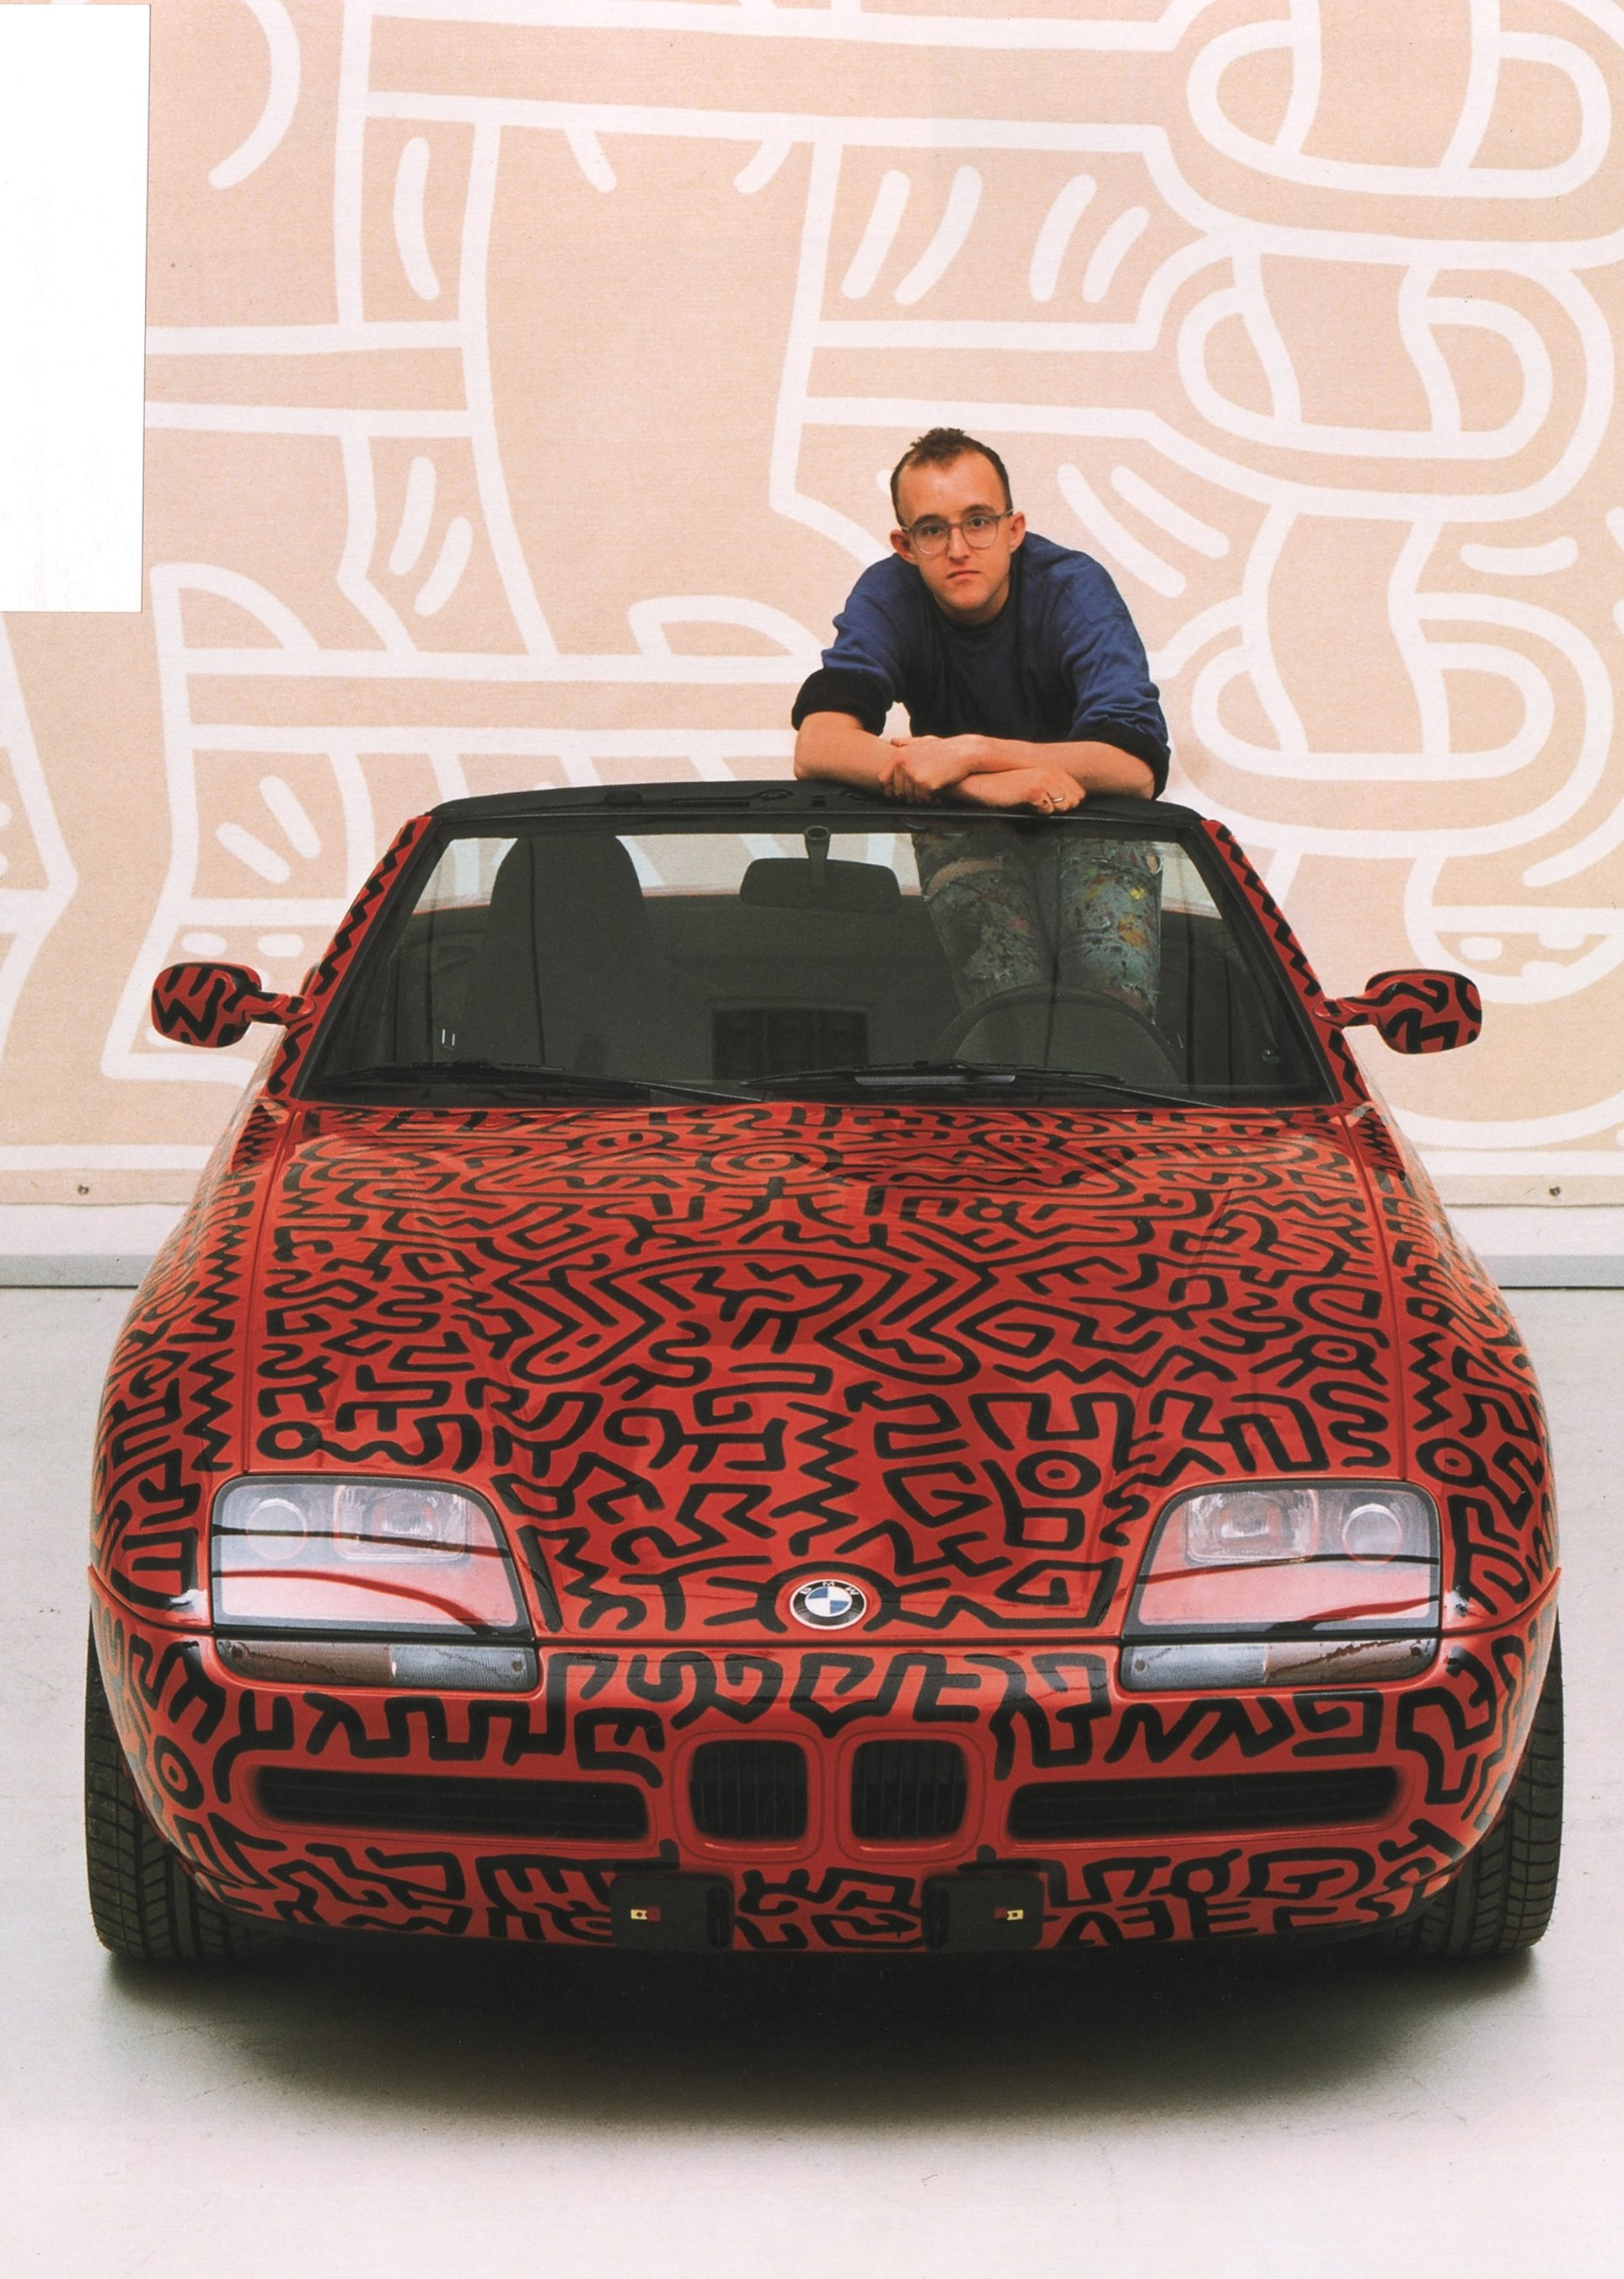 Rare Autos Painted by Keith Haring on Display at the Petersen Automotive Museum